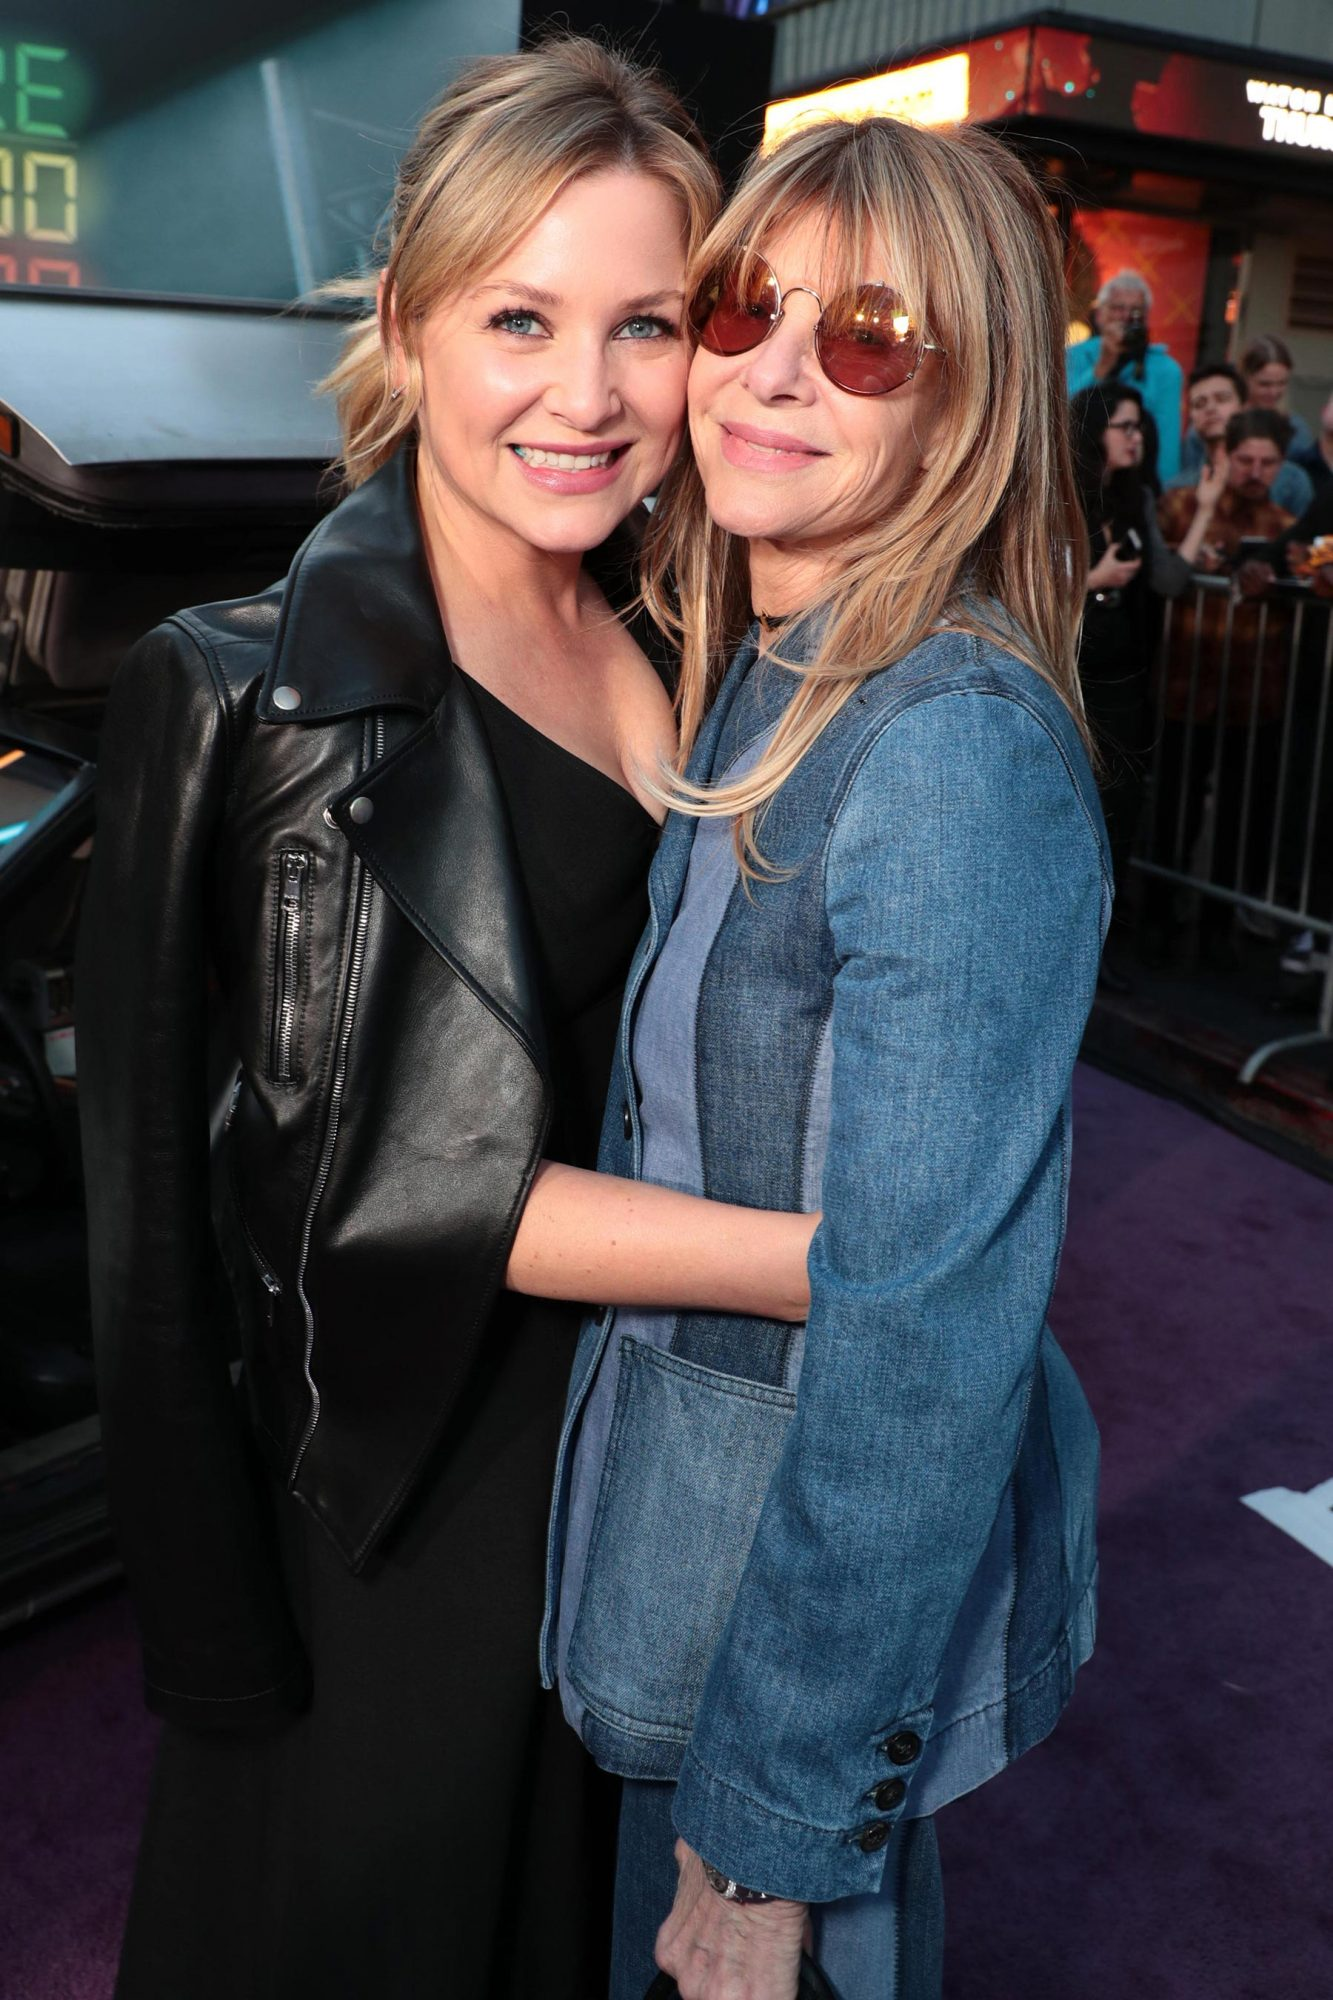 Warner Bros. Pictures World Premiere of 'Ready Player One' at The Dolby Theatre, Los Angeles, CA, USA - 26 March 2018